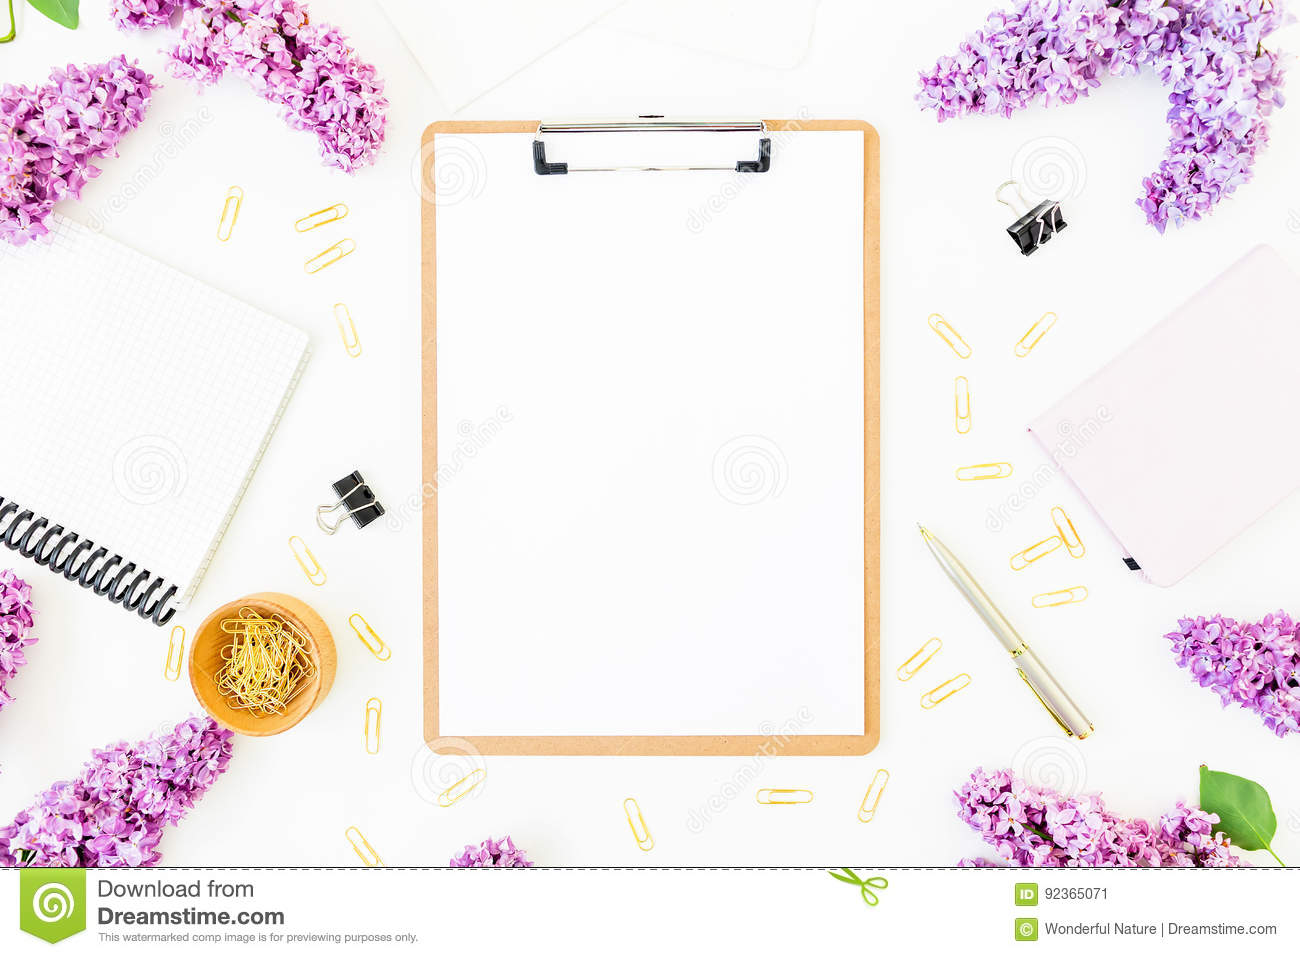 Download Minimalistic Workspace With Clipboard, Notebook, Pen, Lilac And Accessories On White Background. Flat Lay, Top View. Beauty Blog C Stock Image - Image of flat, clipboard: 92365071